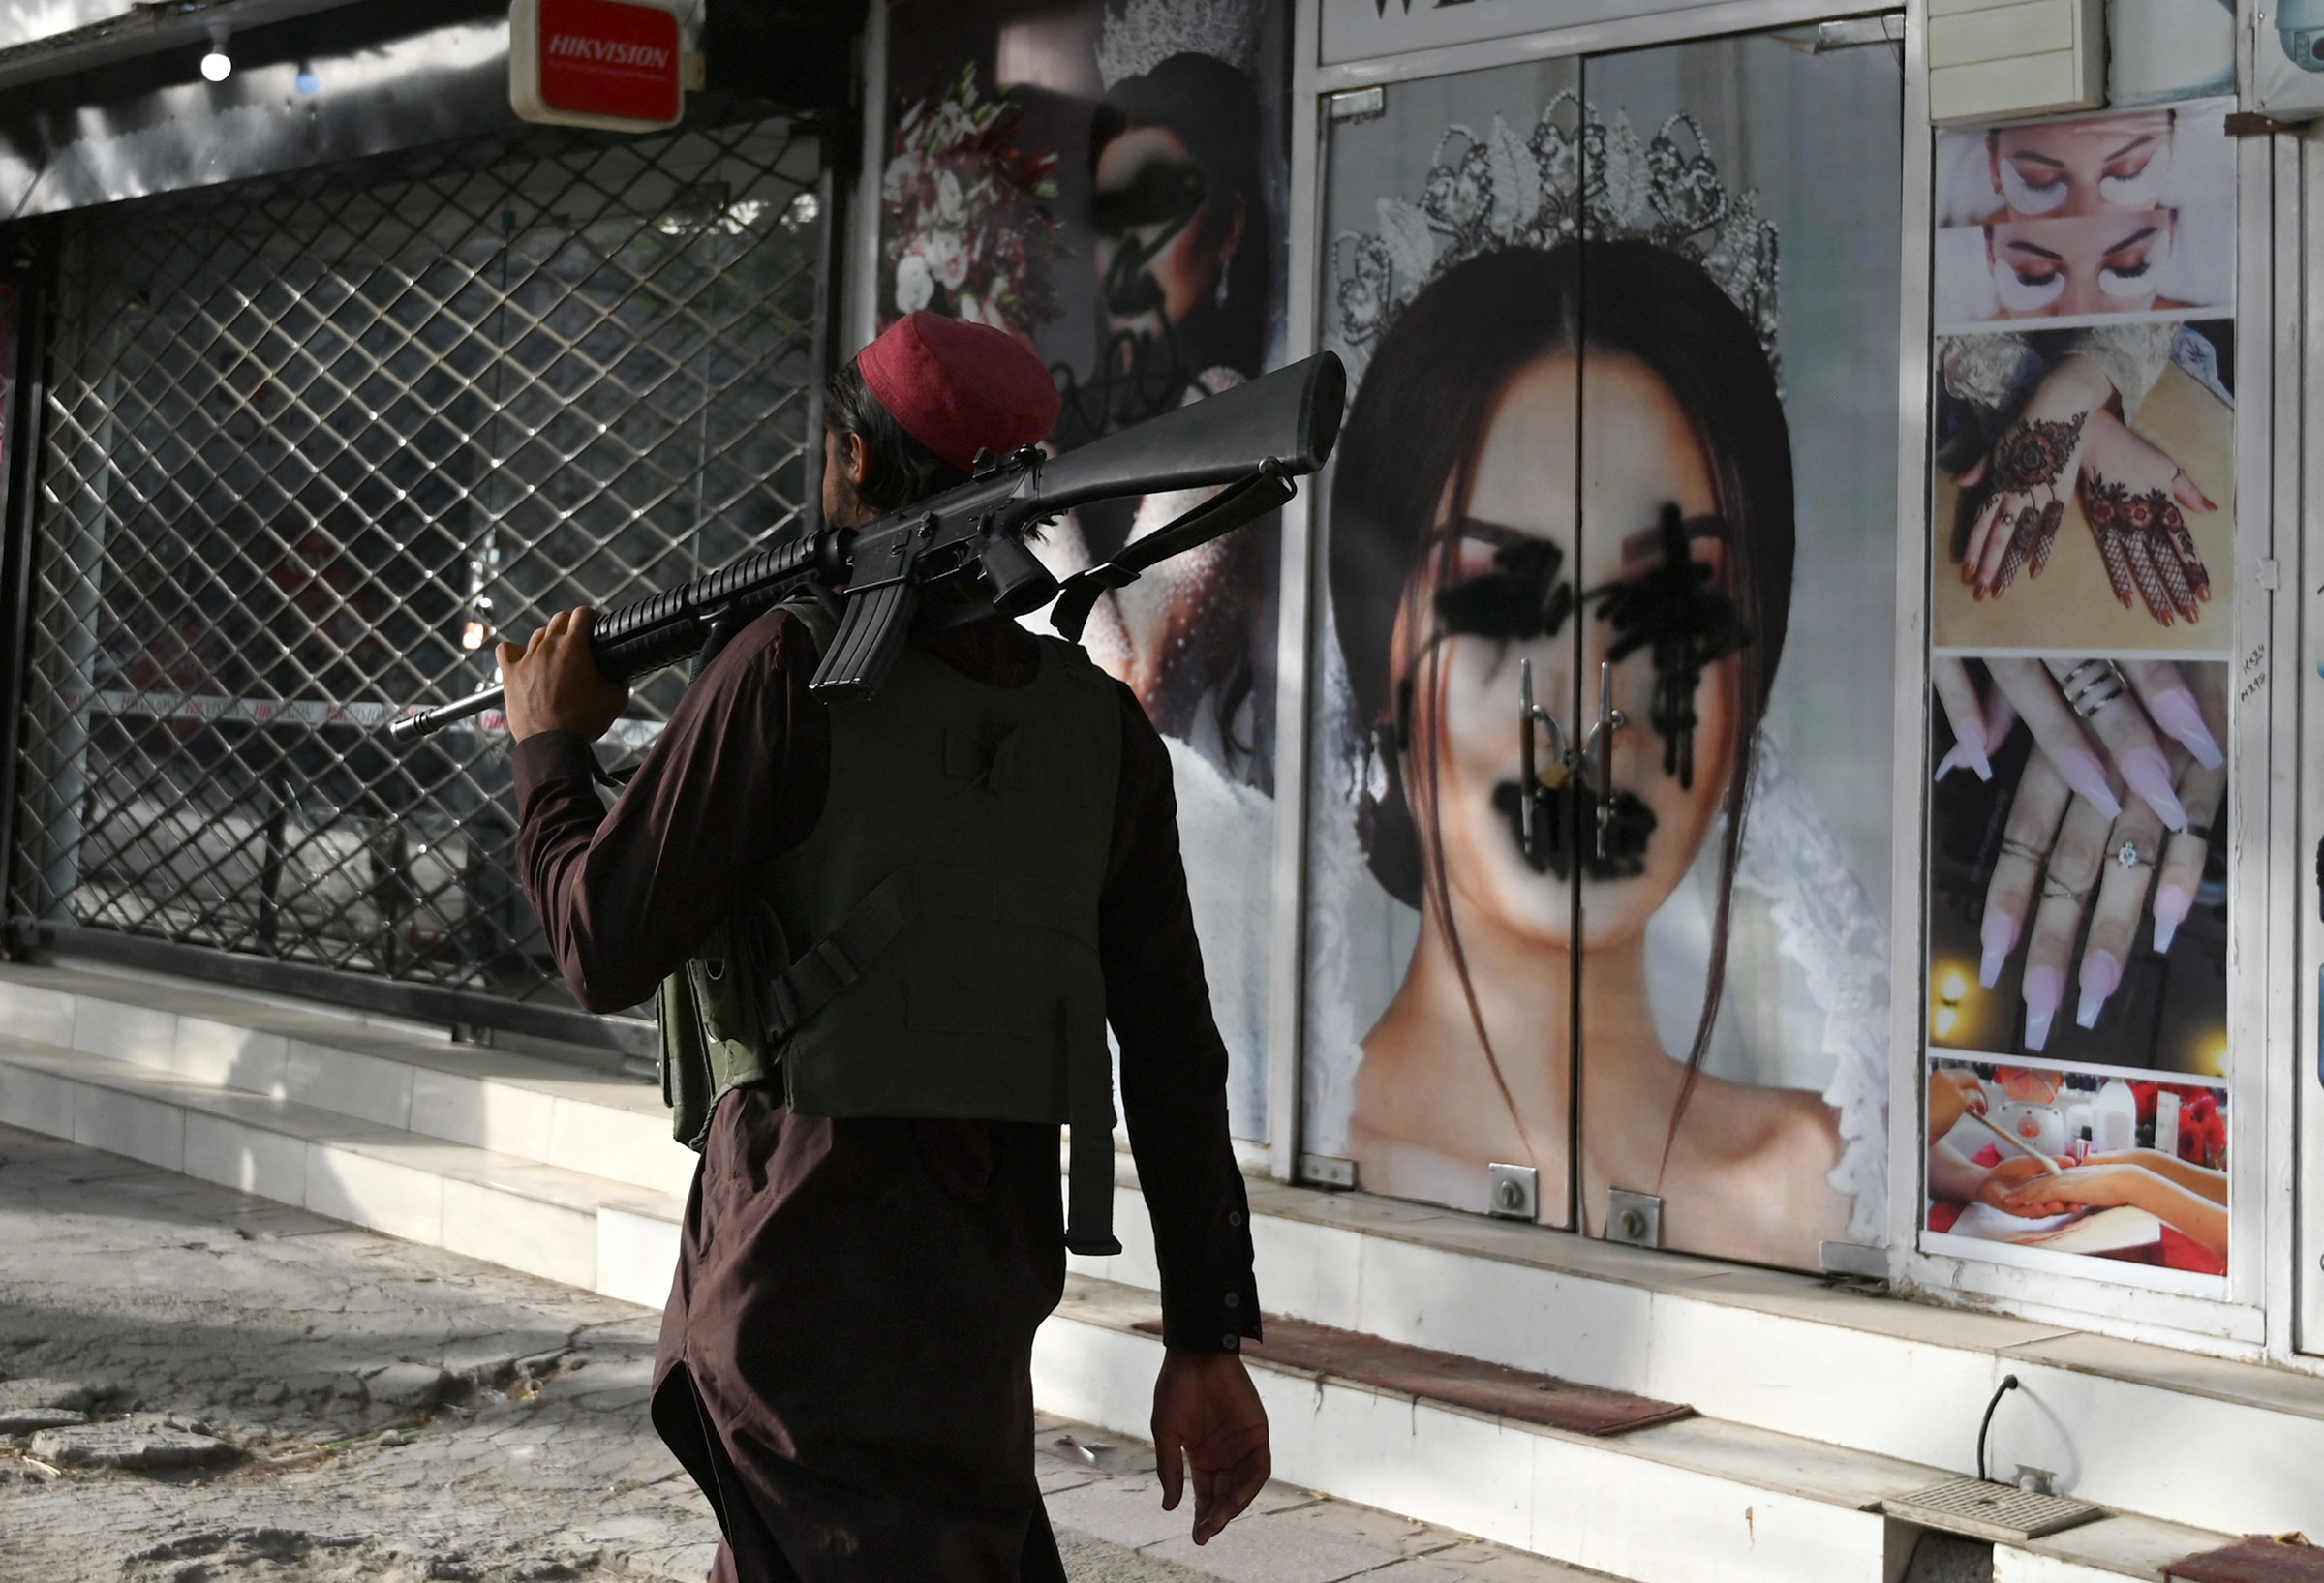 A Taliban fighter walks past a beauty salon with images of women defaced using spray paint in the Shar-e-Naw area of Kabul on Aug. 18.